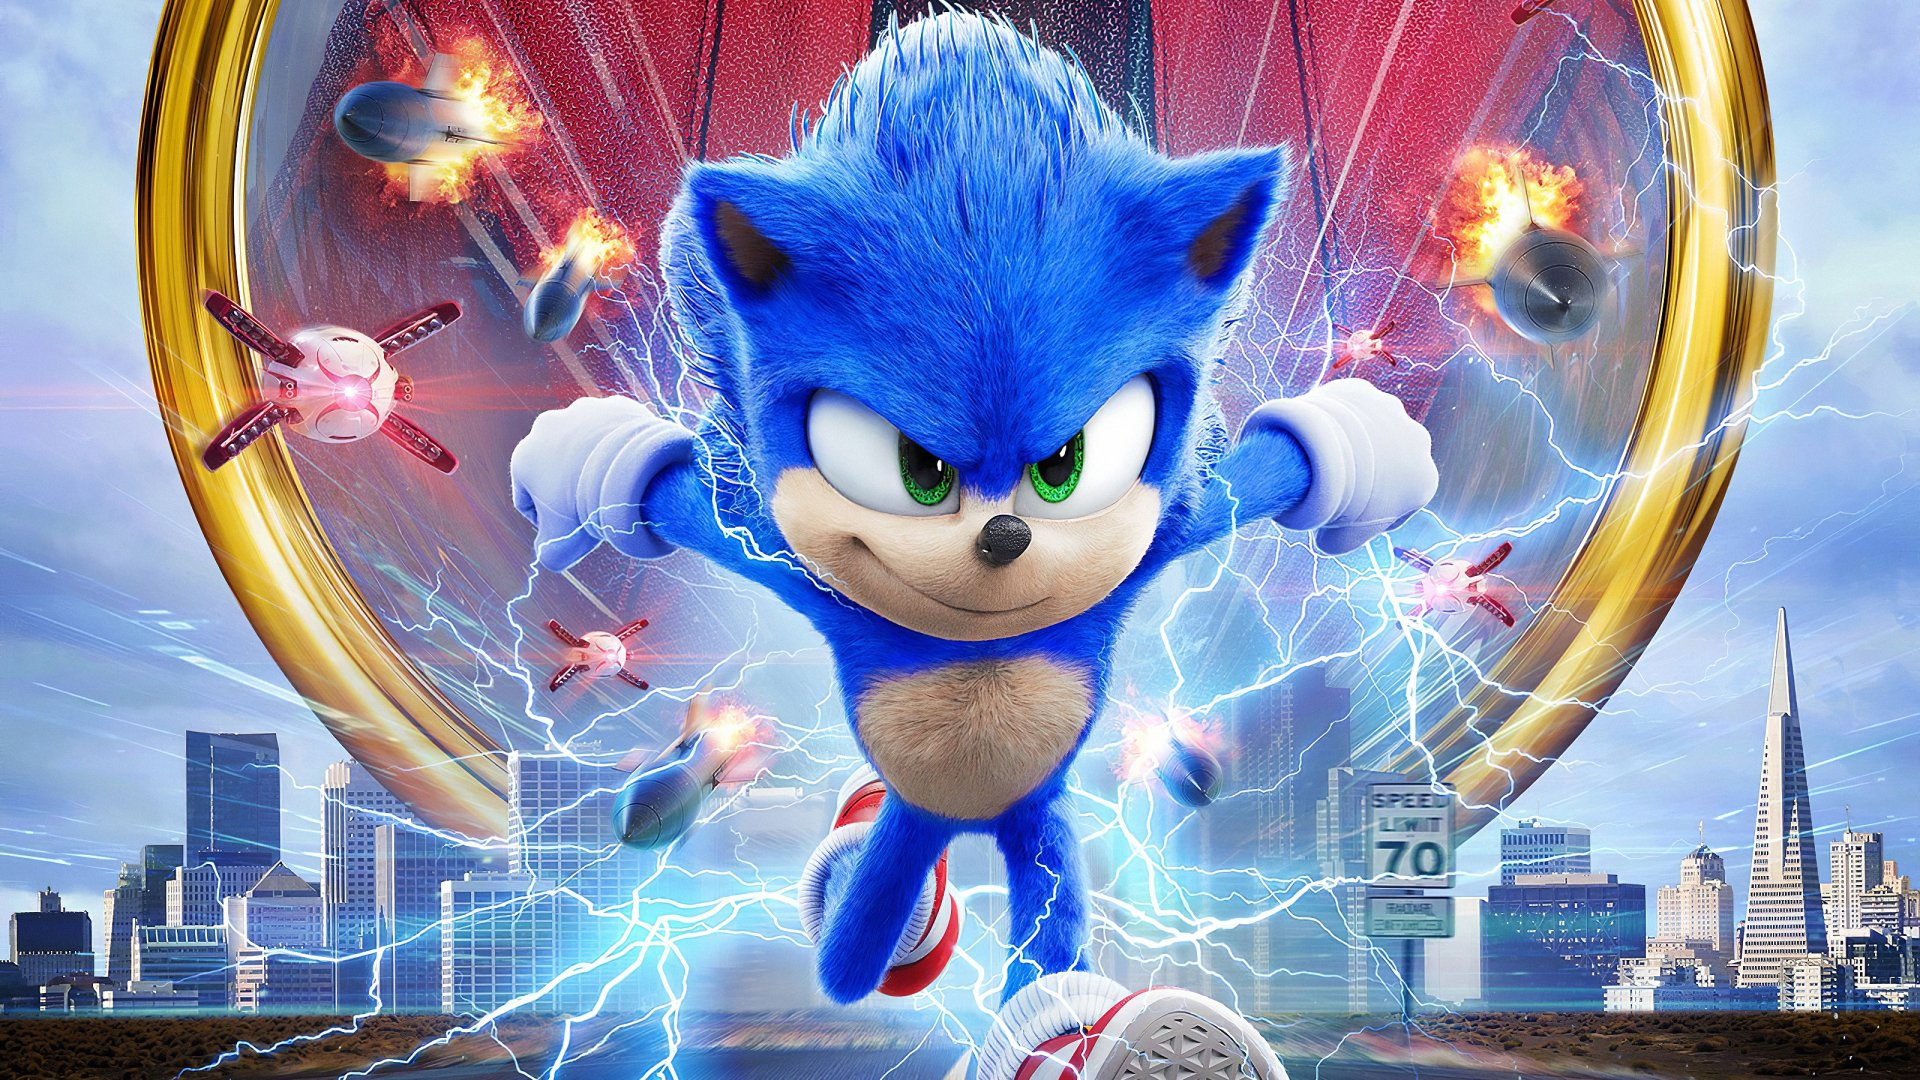 Sonic The Hedgehog 2 Release Date Plausible For 2023 Trailer